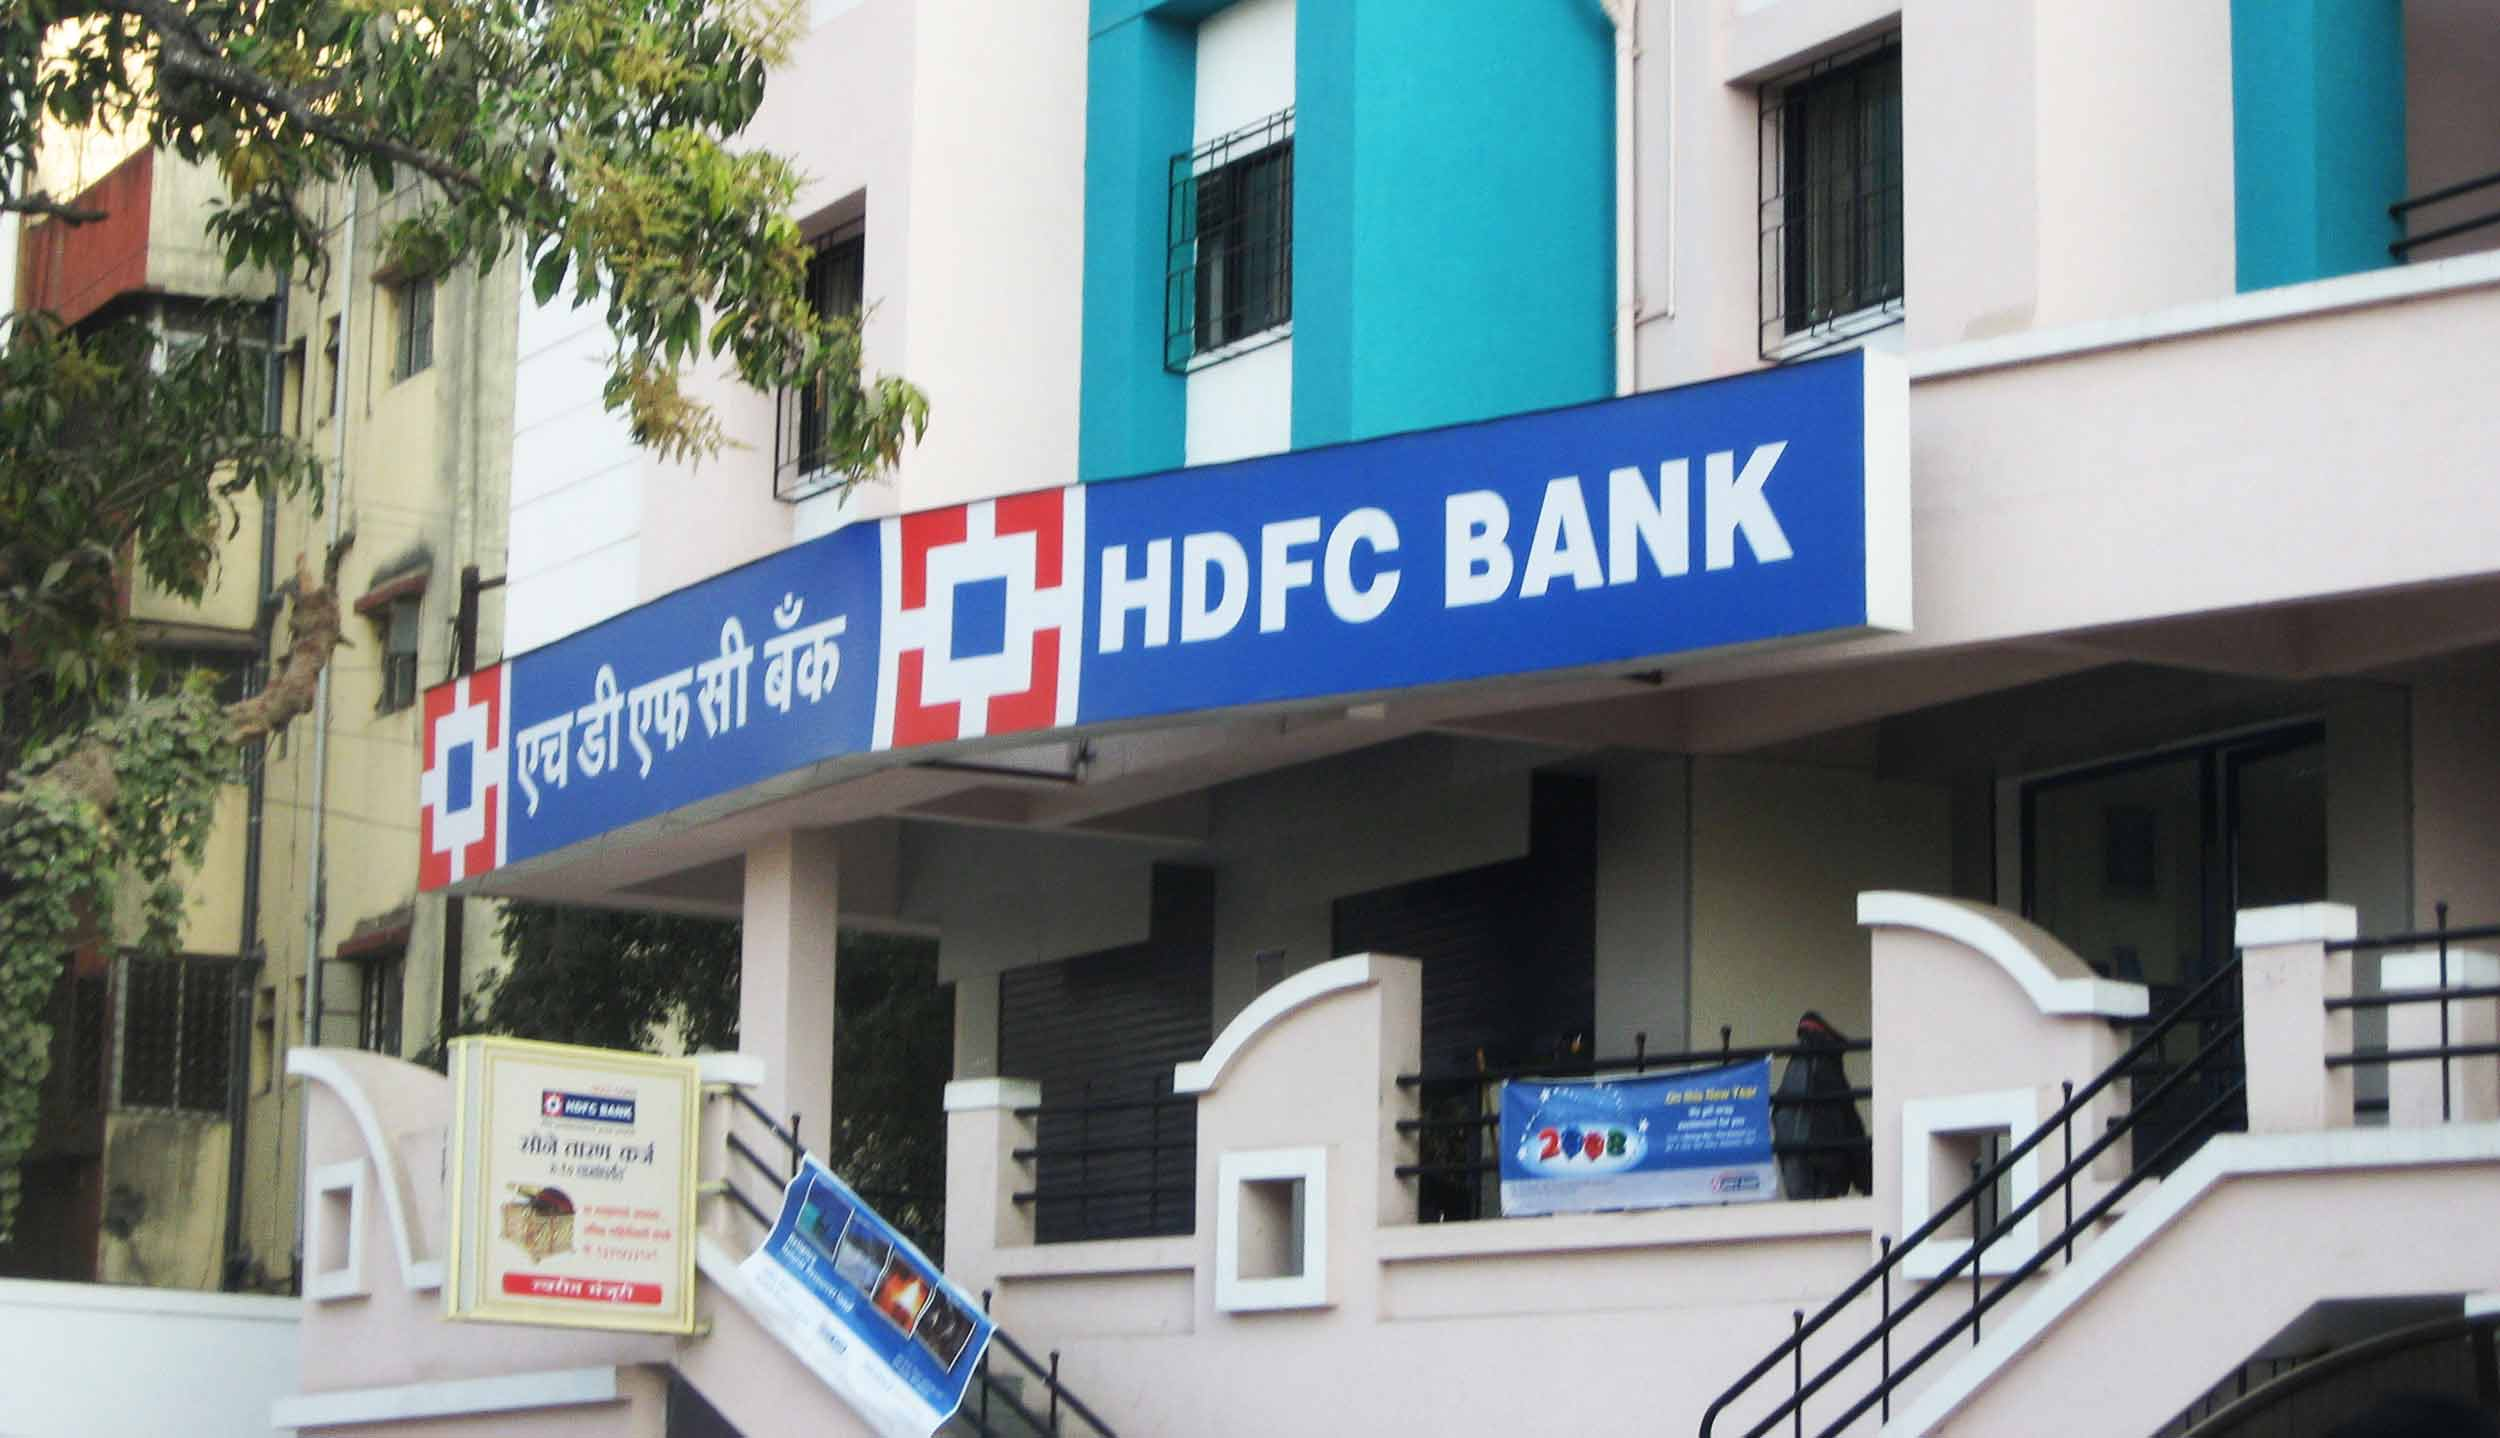 Branch of hdfc bank in bangalore dating 1